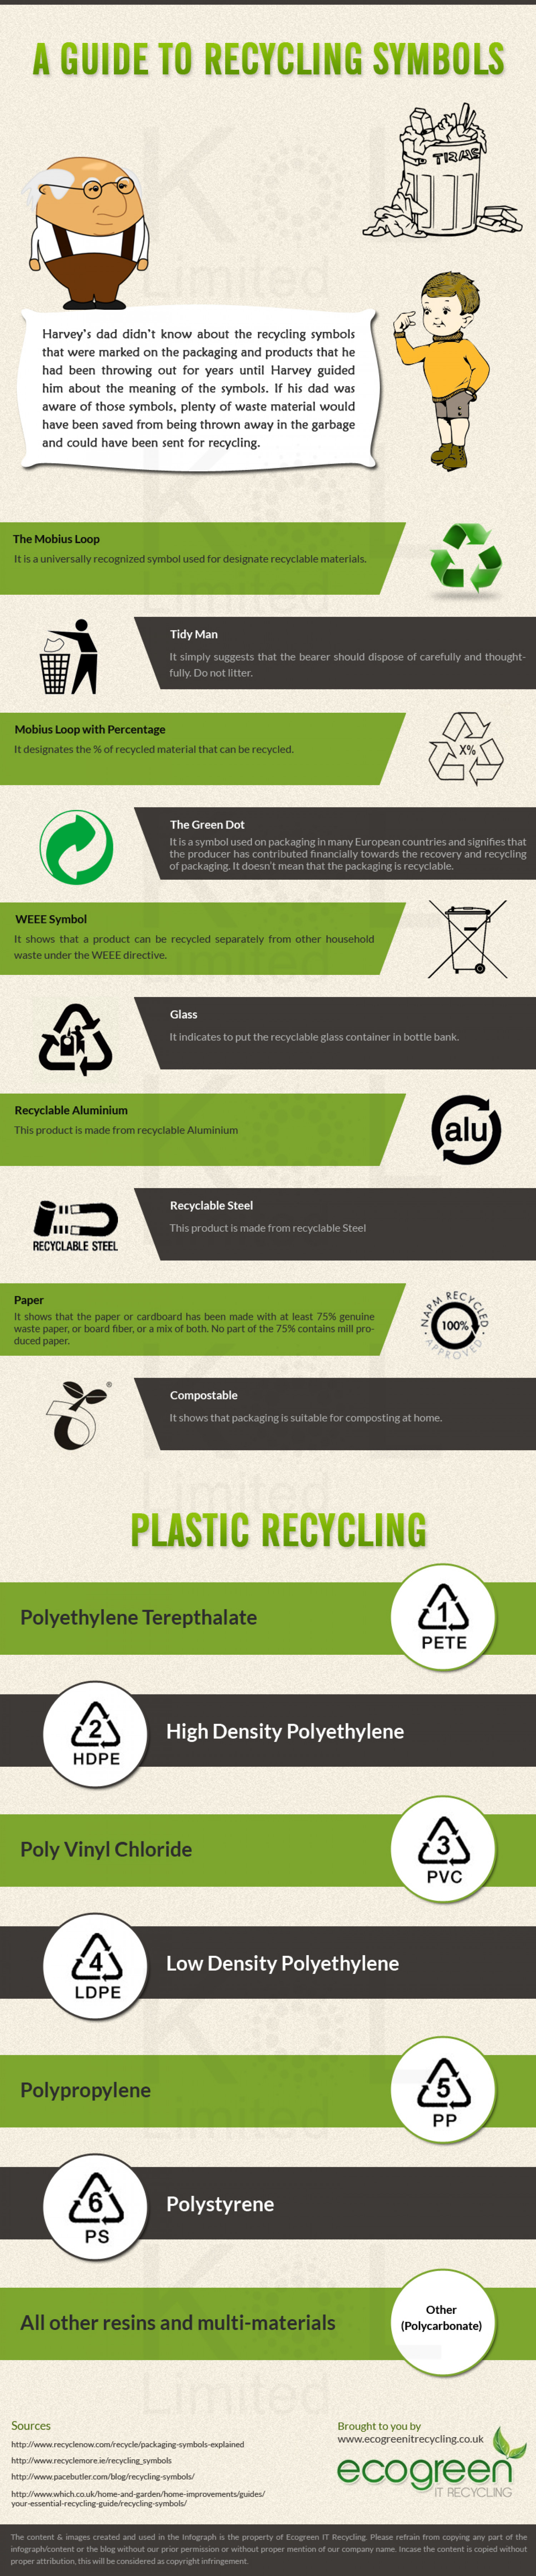 A Guide to Recycling Symbols Infographic